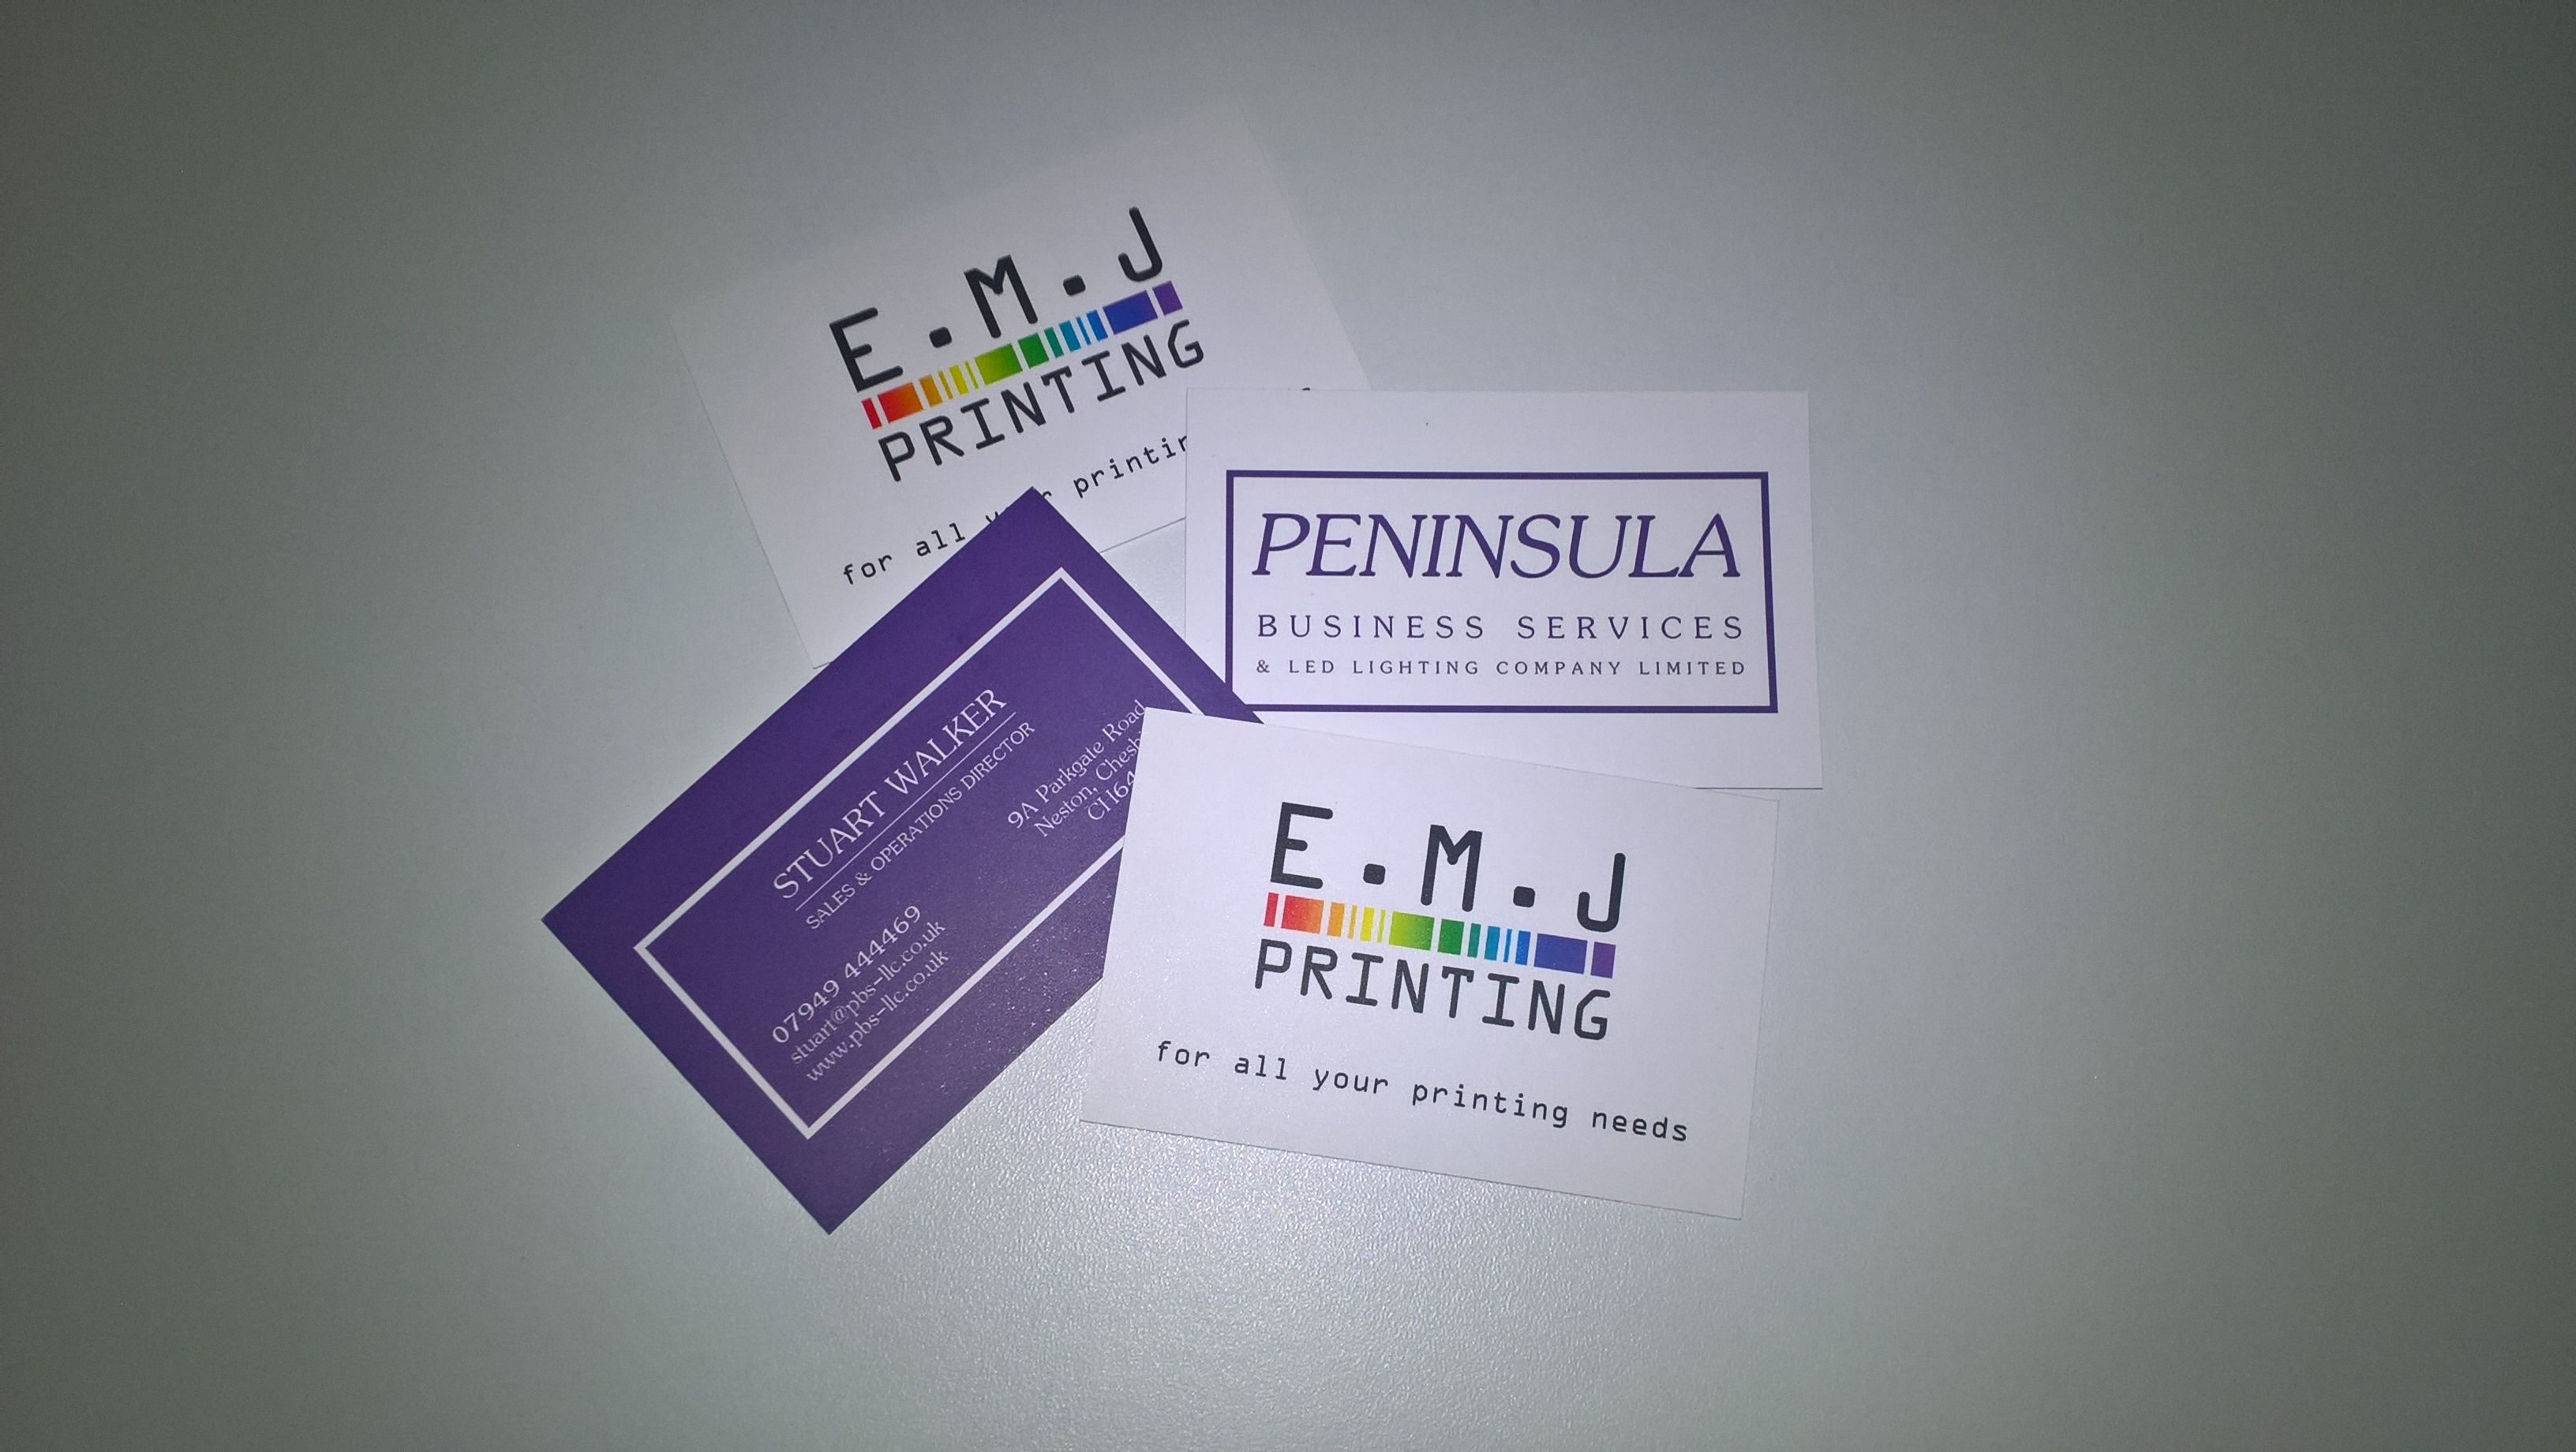 business cards free design printing free deliveryemj